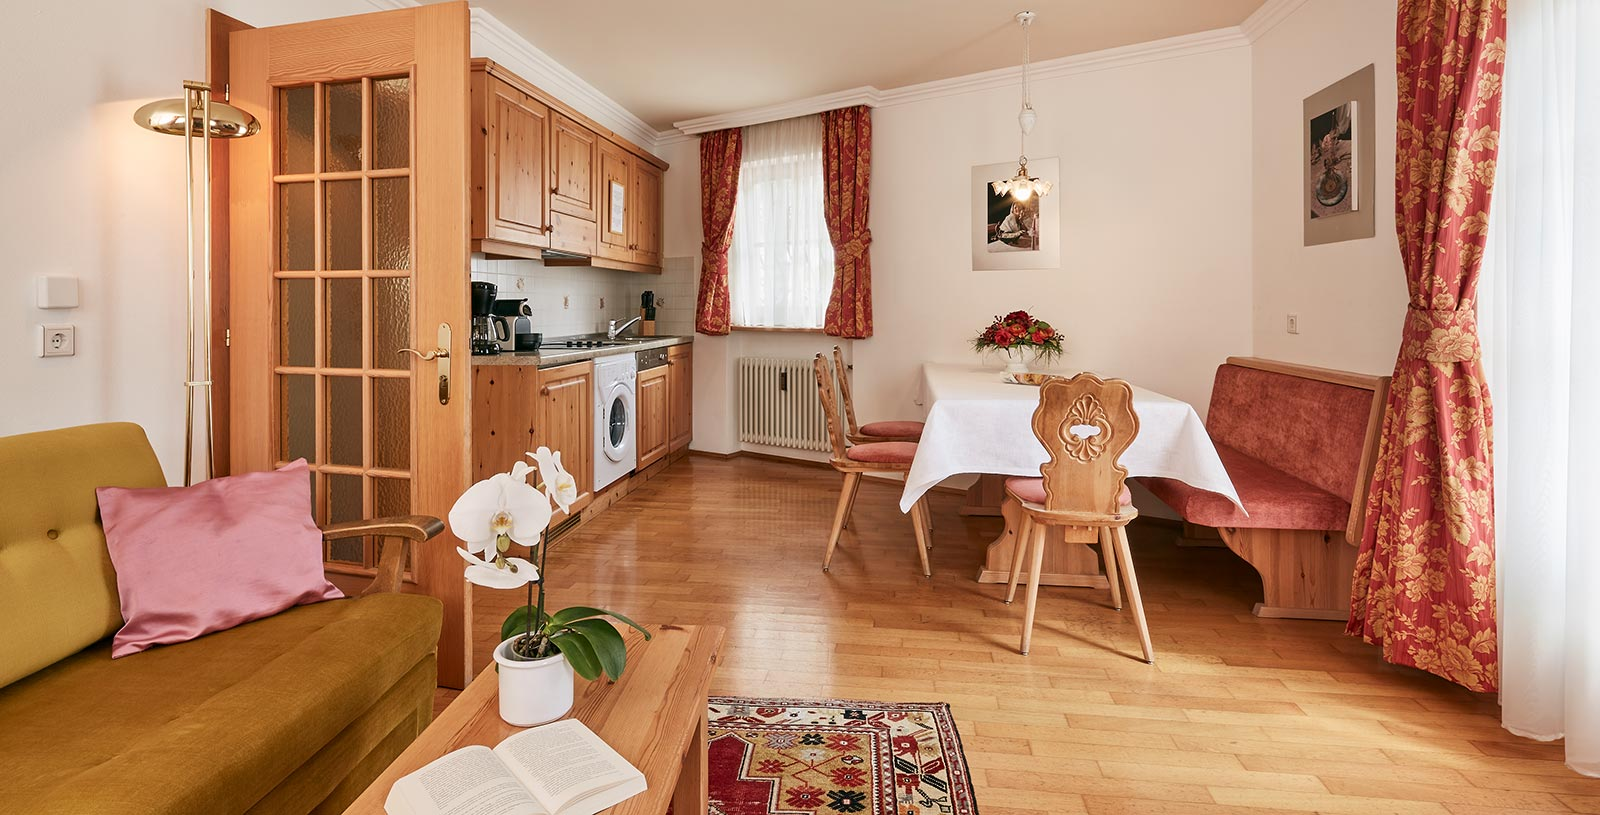 Kitchen-cum-living room of a holiday apartment of the Chalet Cristina with typical wooden bench